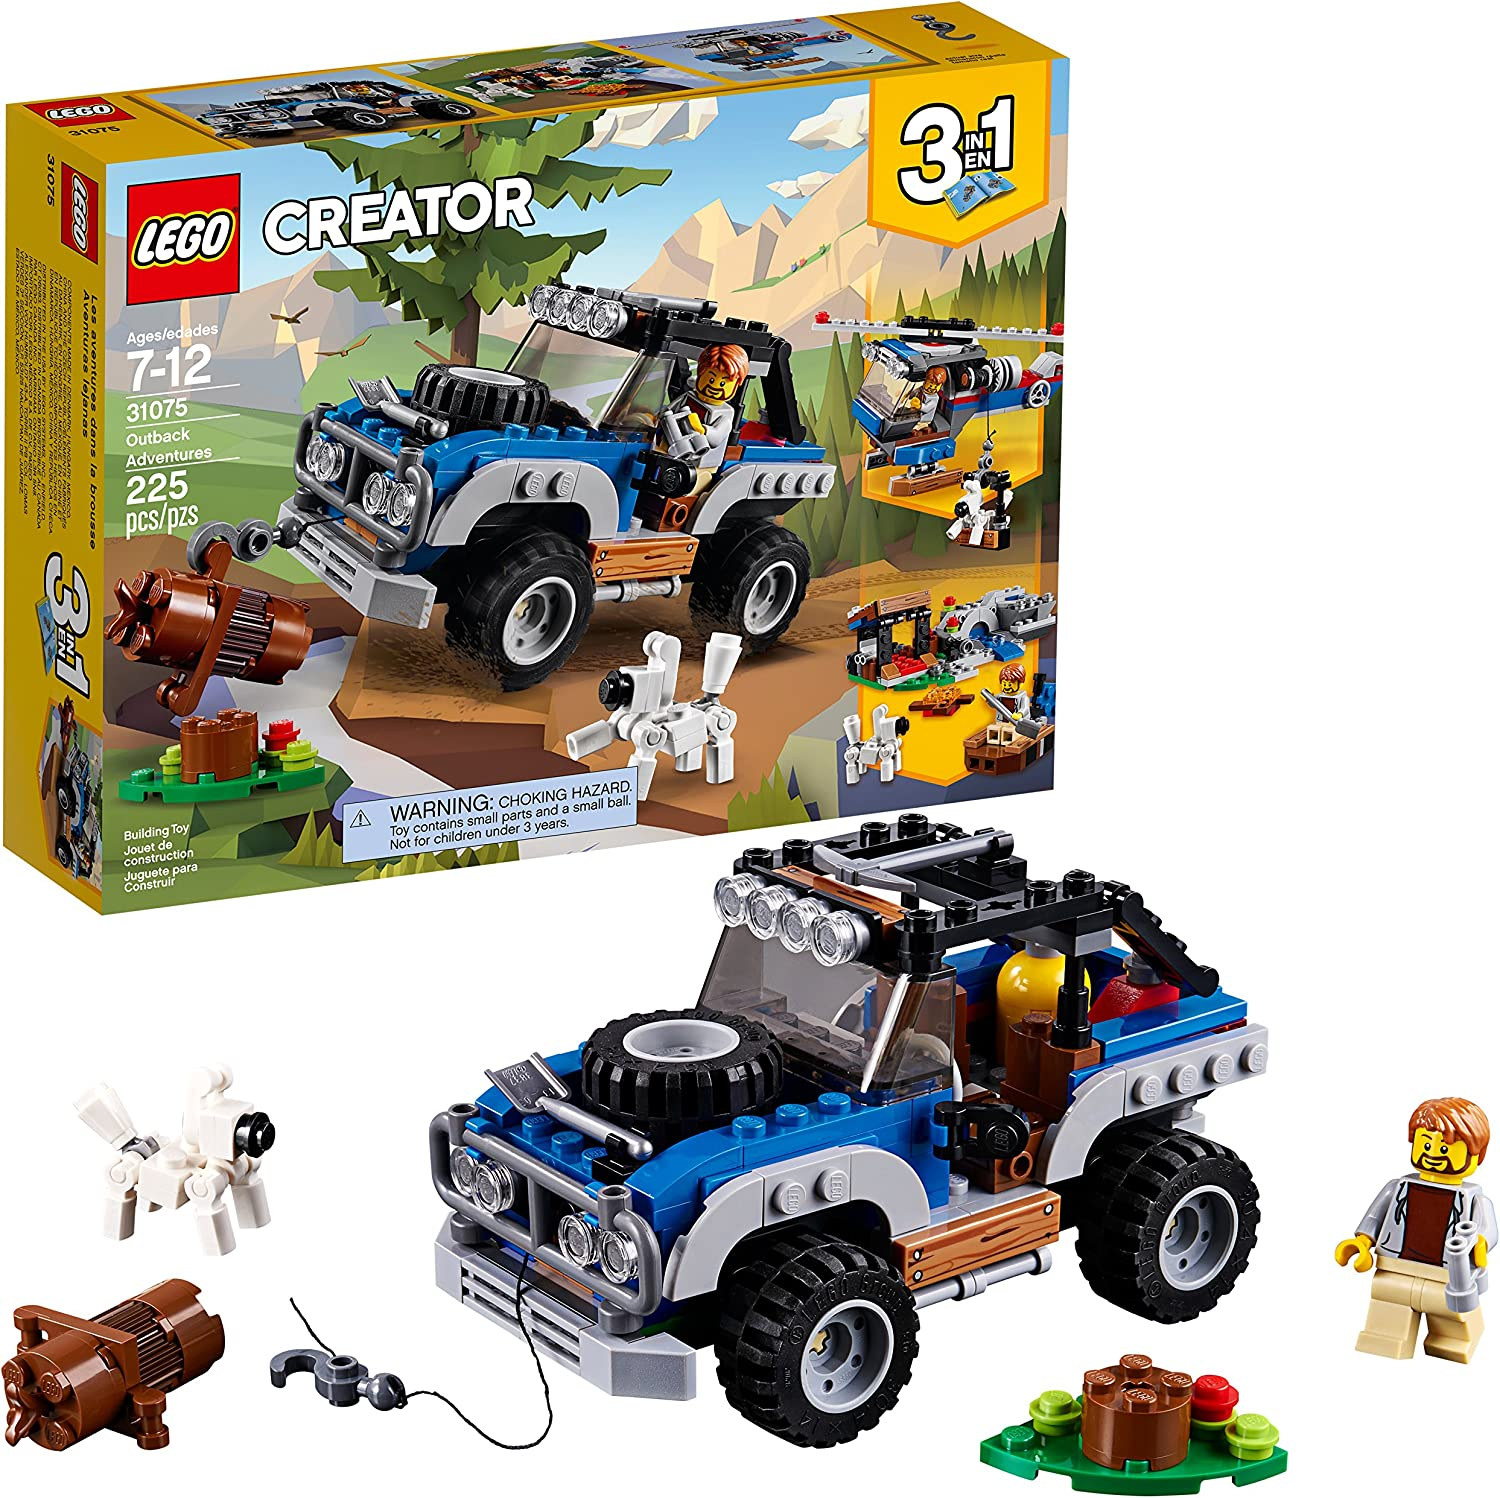 LEGO Creator 3in1 Outback Adventures 31075 Building Kit (225 Piece)